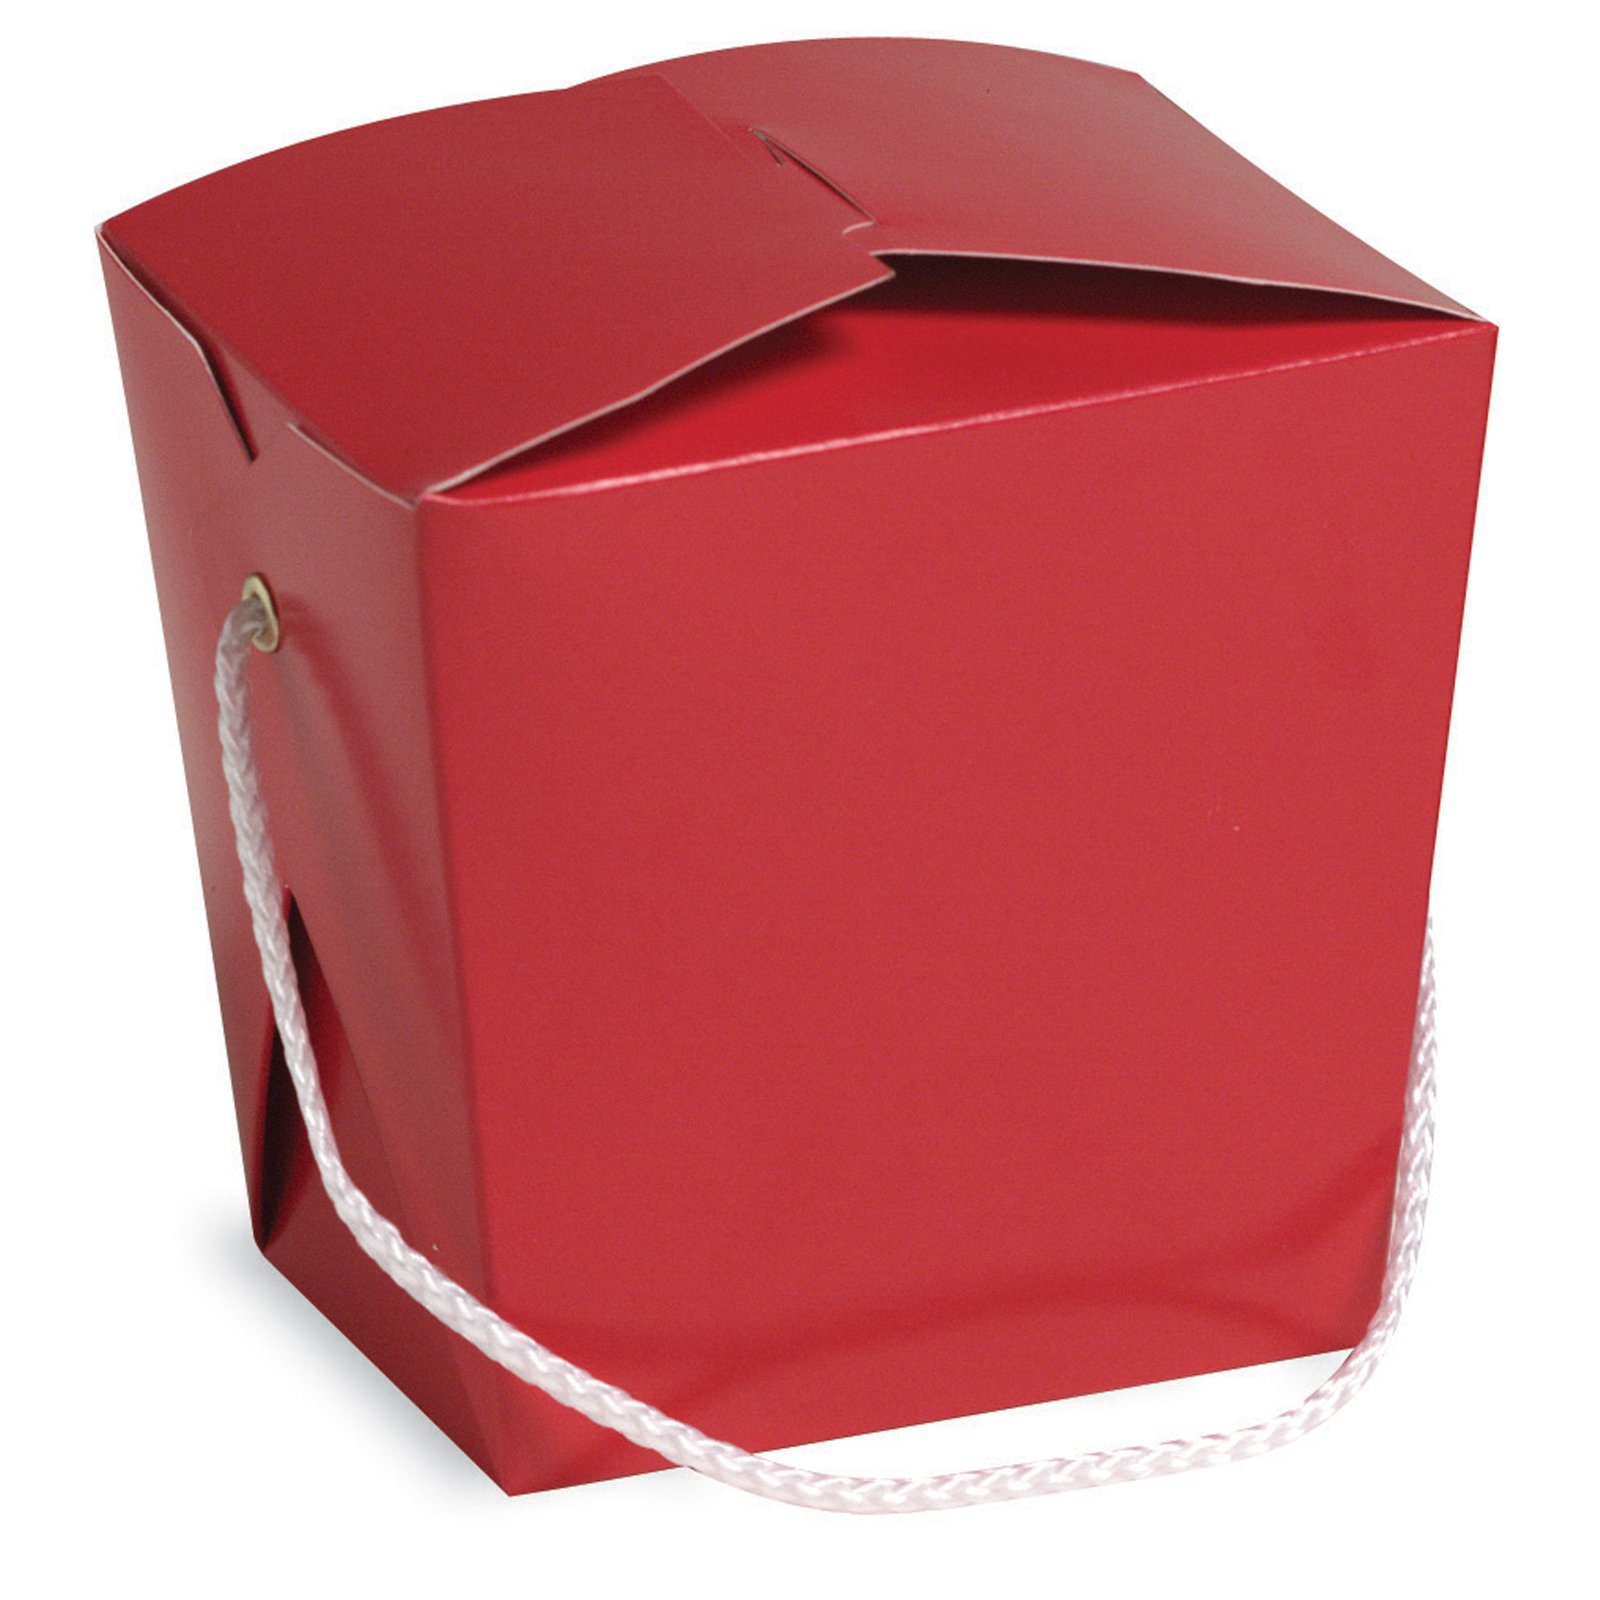 Red Takeout Favor Box (1 count)